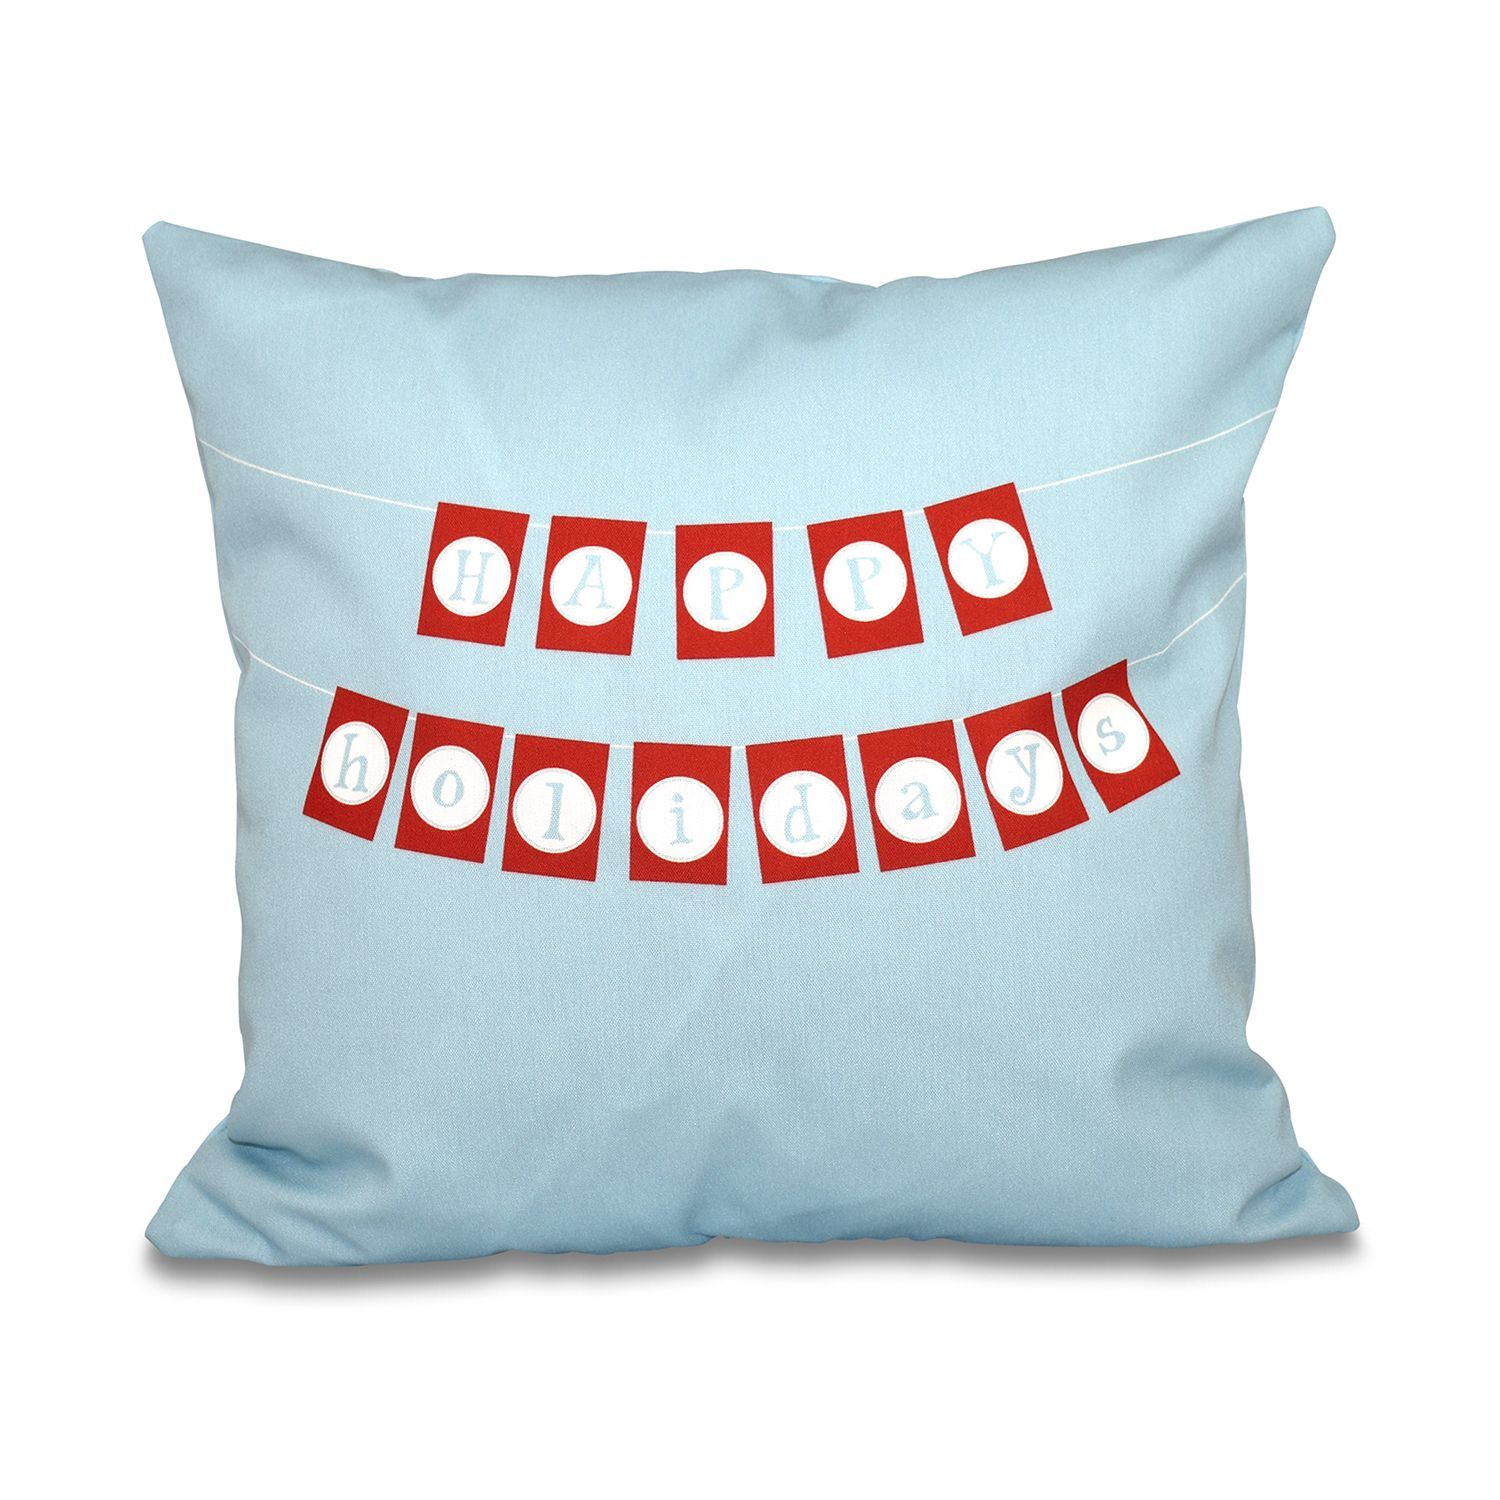 E by design happy holidays banner word print inch throw pillow